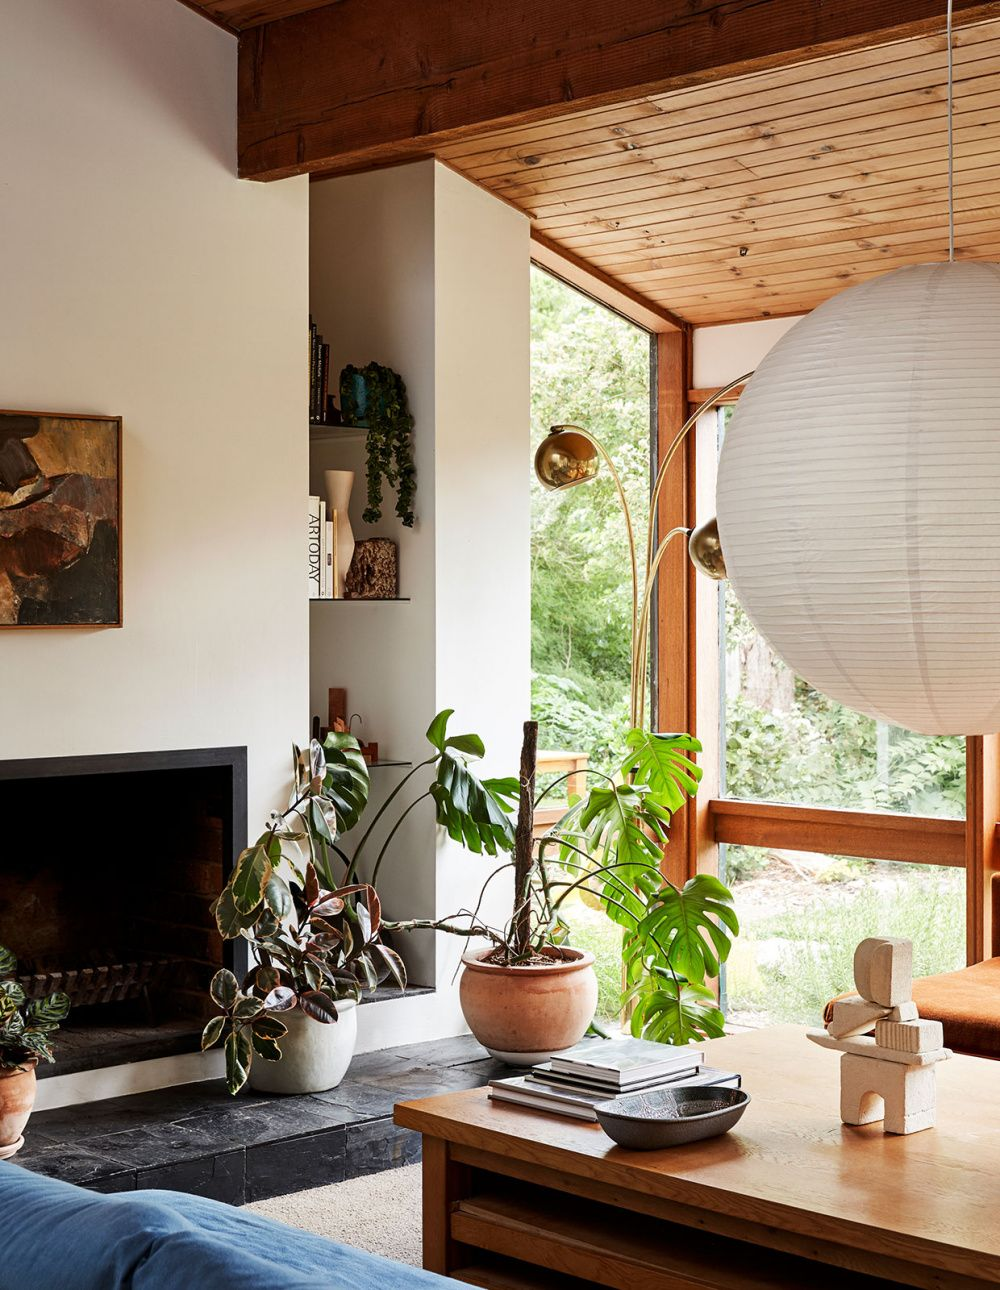 An Early '80s Home With Good Vibes